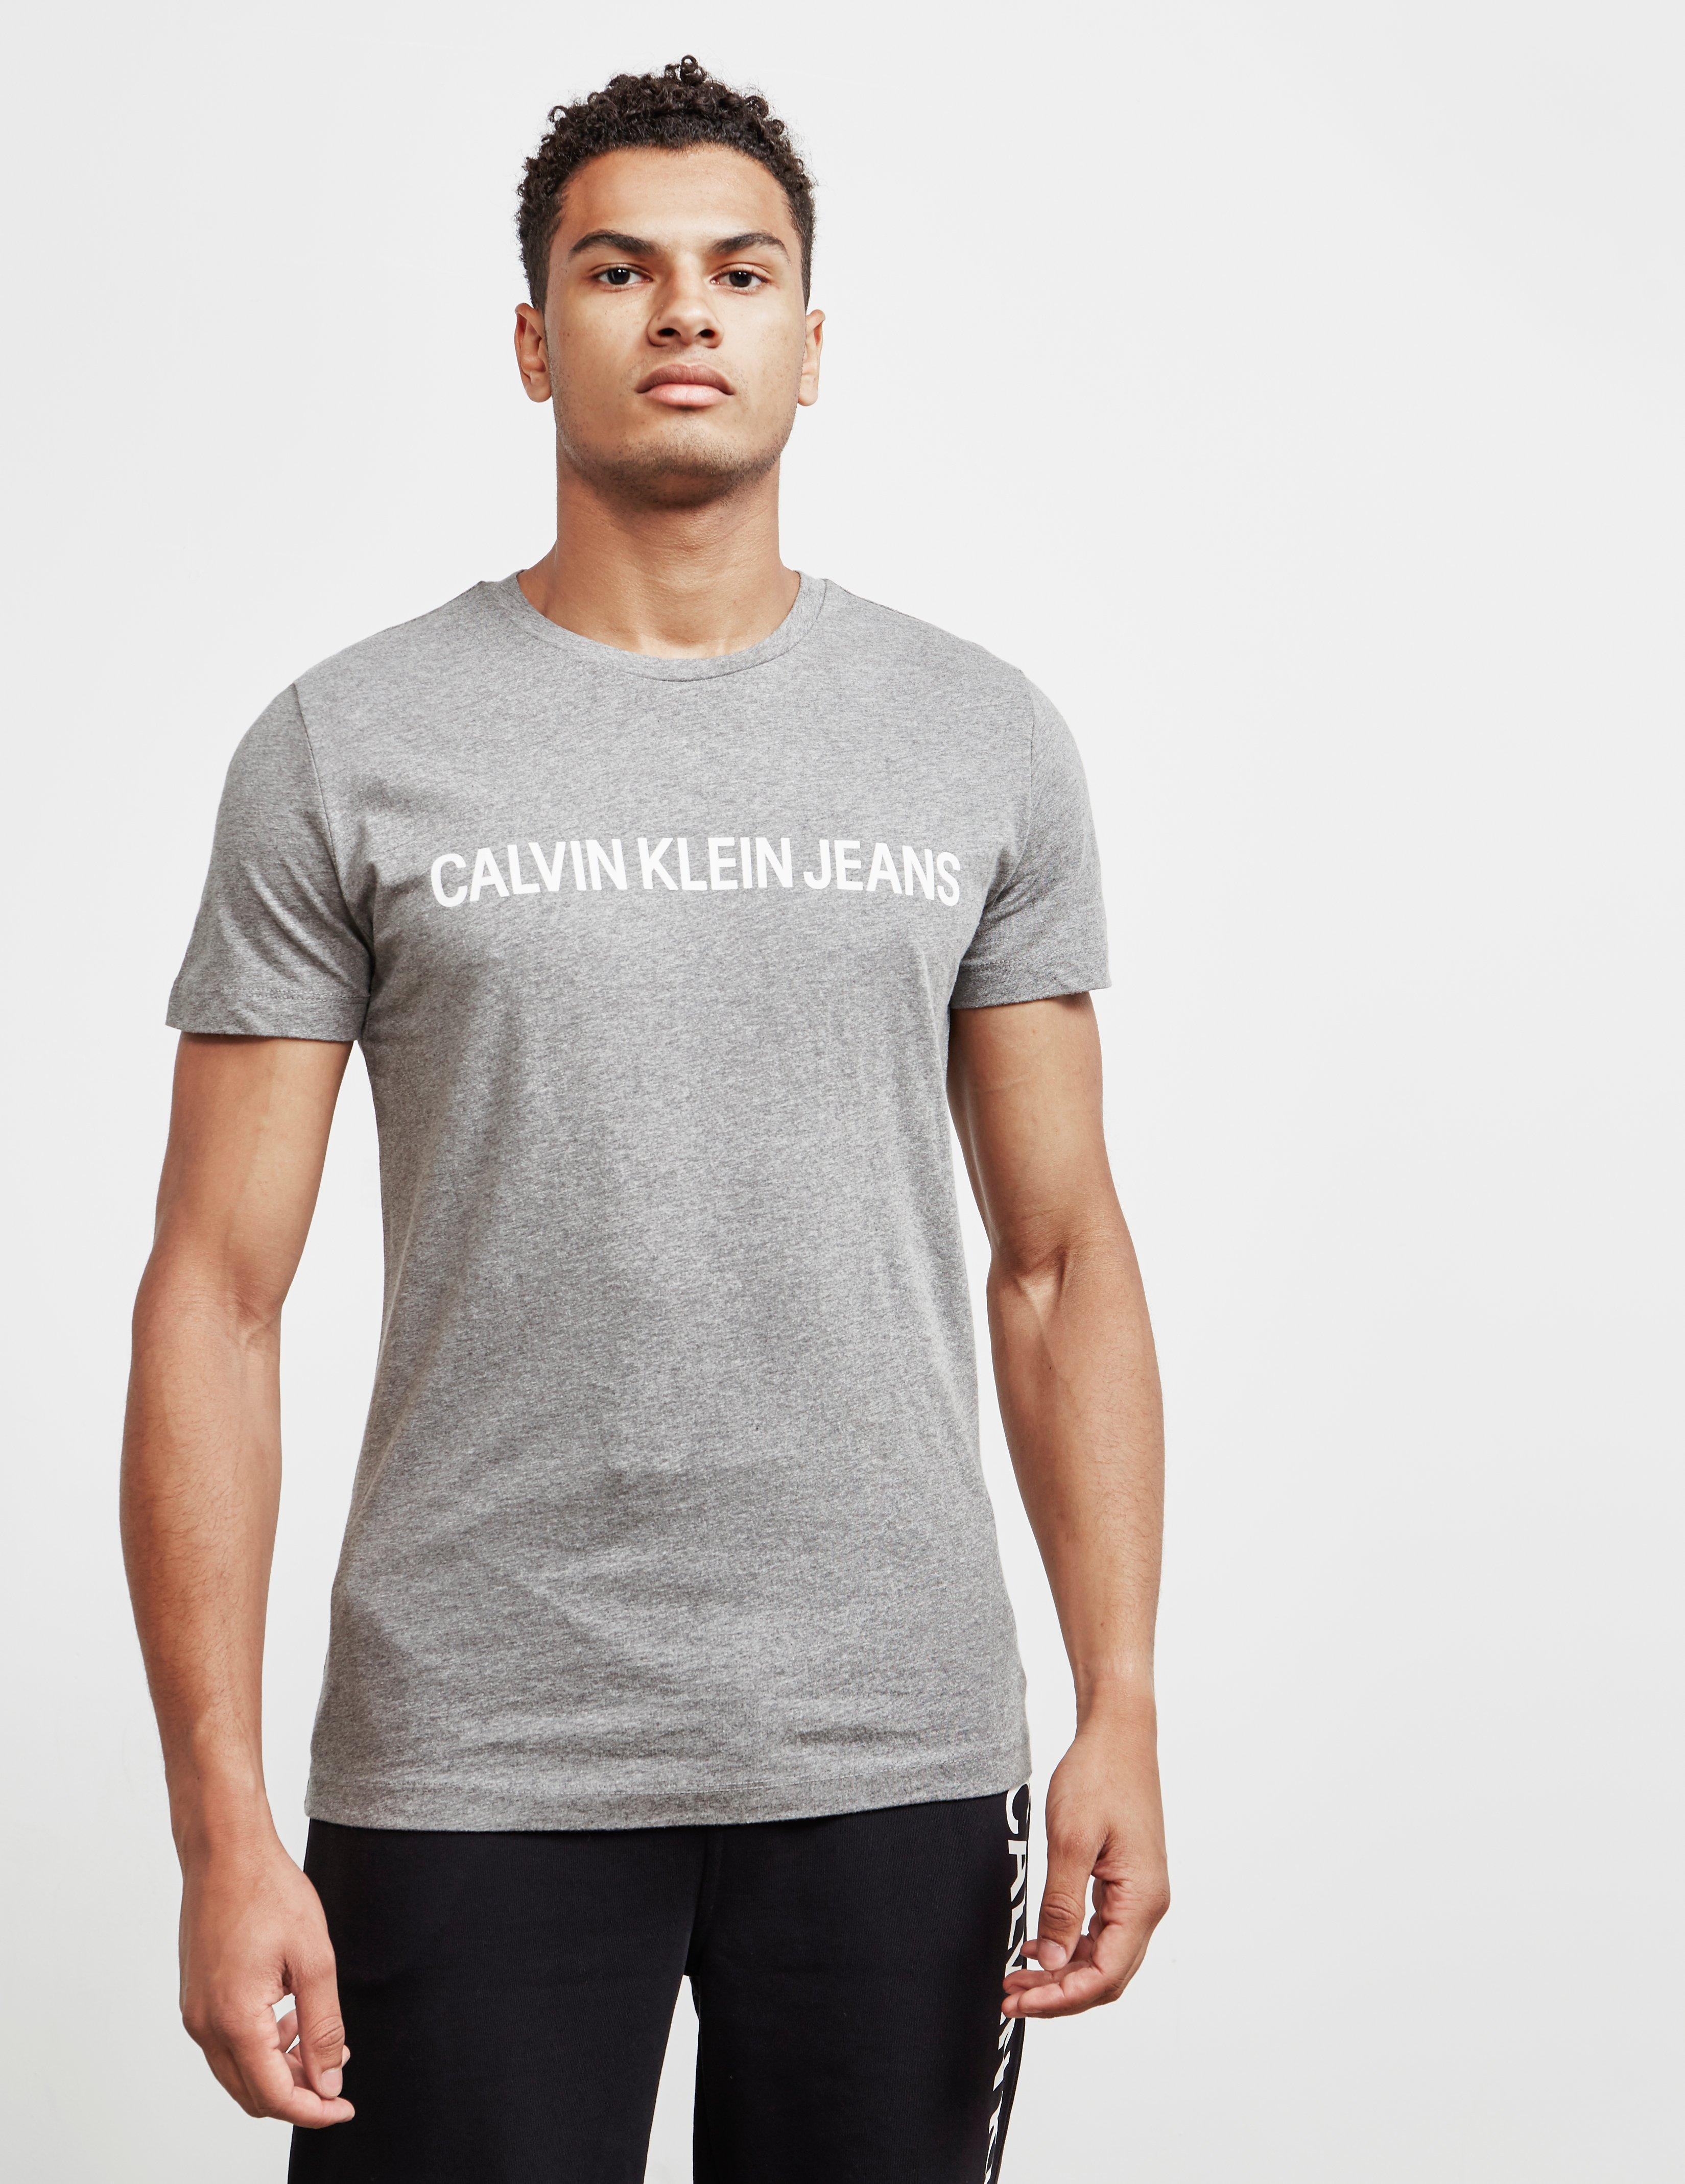 2422fcf00 Calvin Klein Mens Institutional Short Sleeve T-shirt Grey in Gray ...